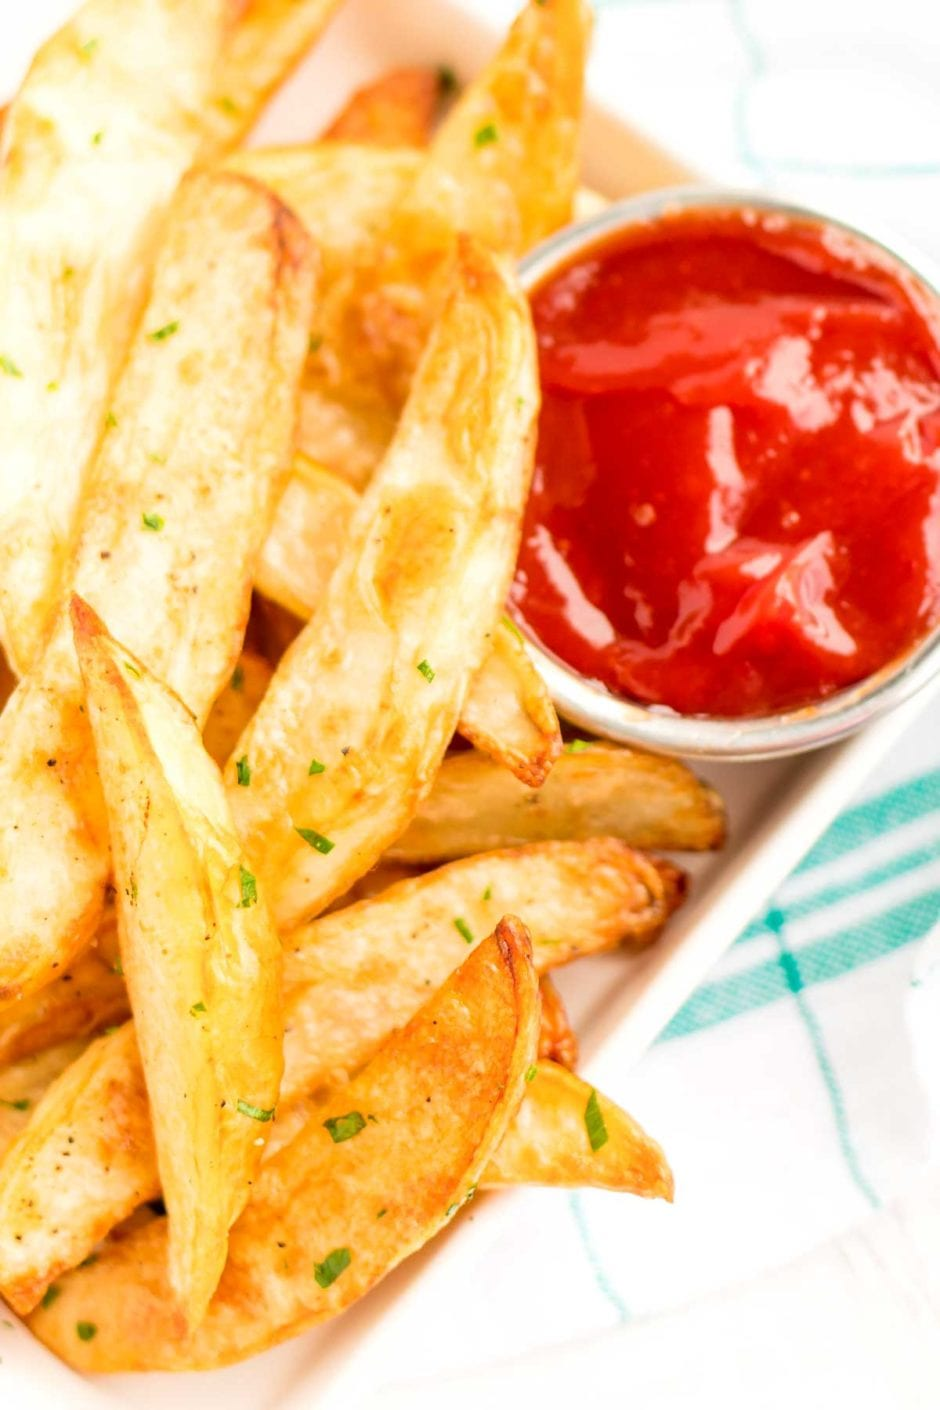 Overhead picture of Crispy Baked Oven Fries with a side of ketchup.